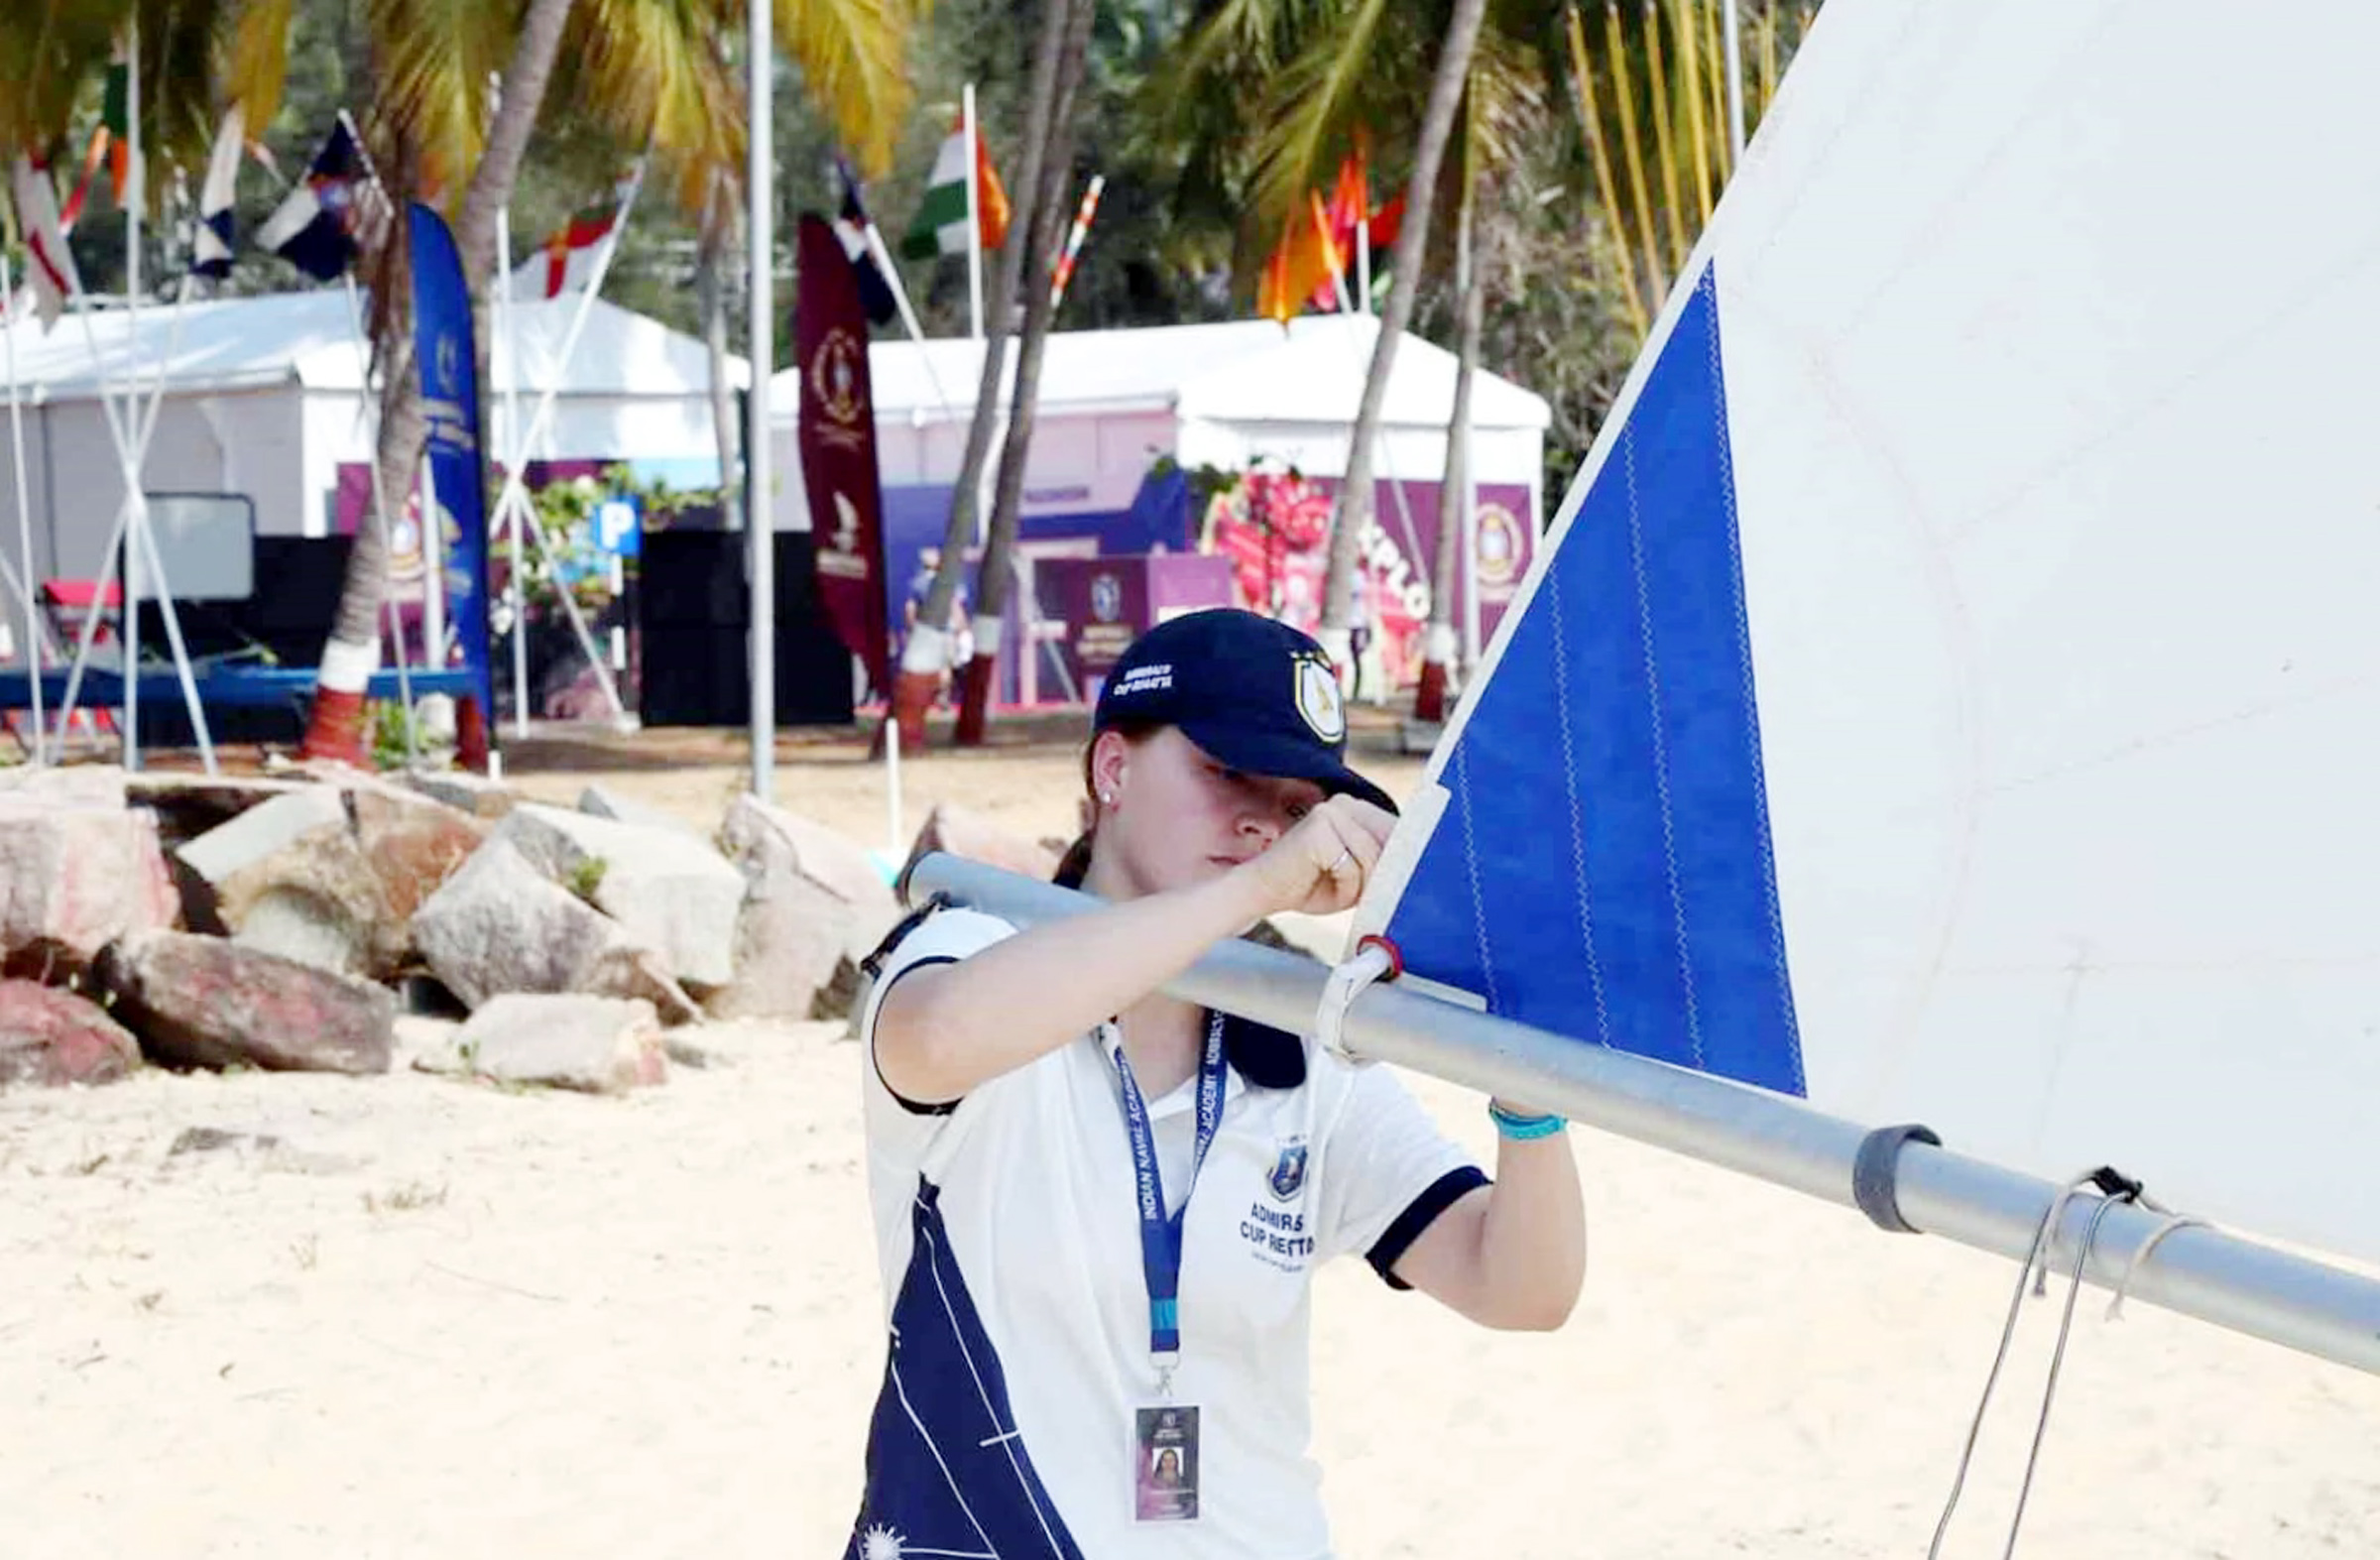 Lieutenant (Navy) Alana Foscarini, a Naval Training Officer at Naval Fleet School (Pacific), prepares her Radial Rig Laser sailing dinghy for competition in the Admiral's Cup Regatta.